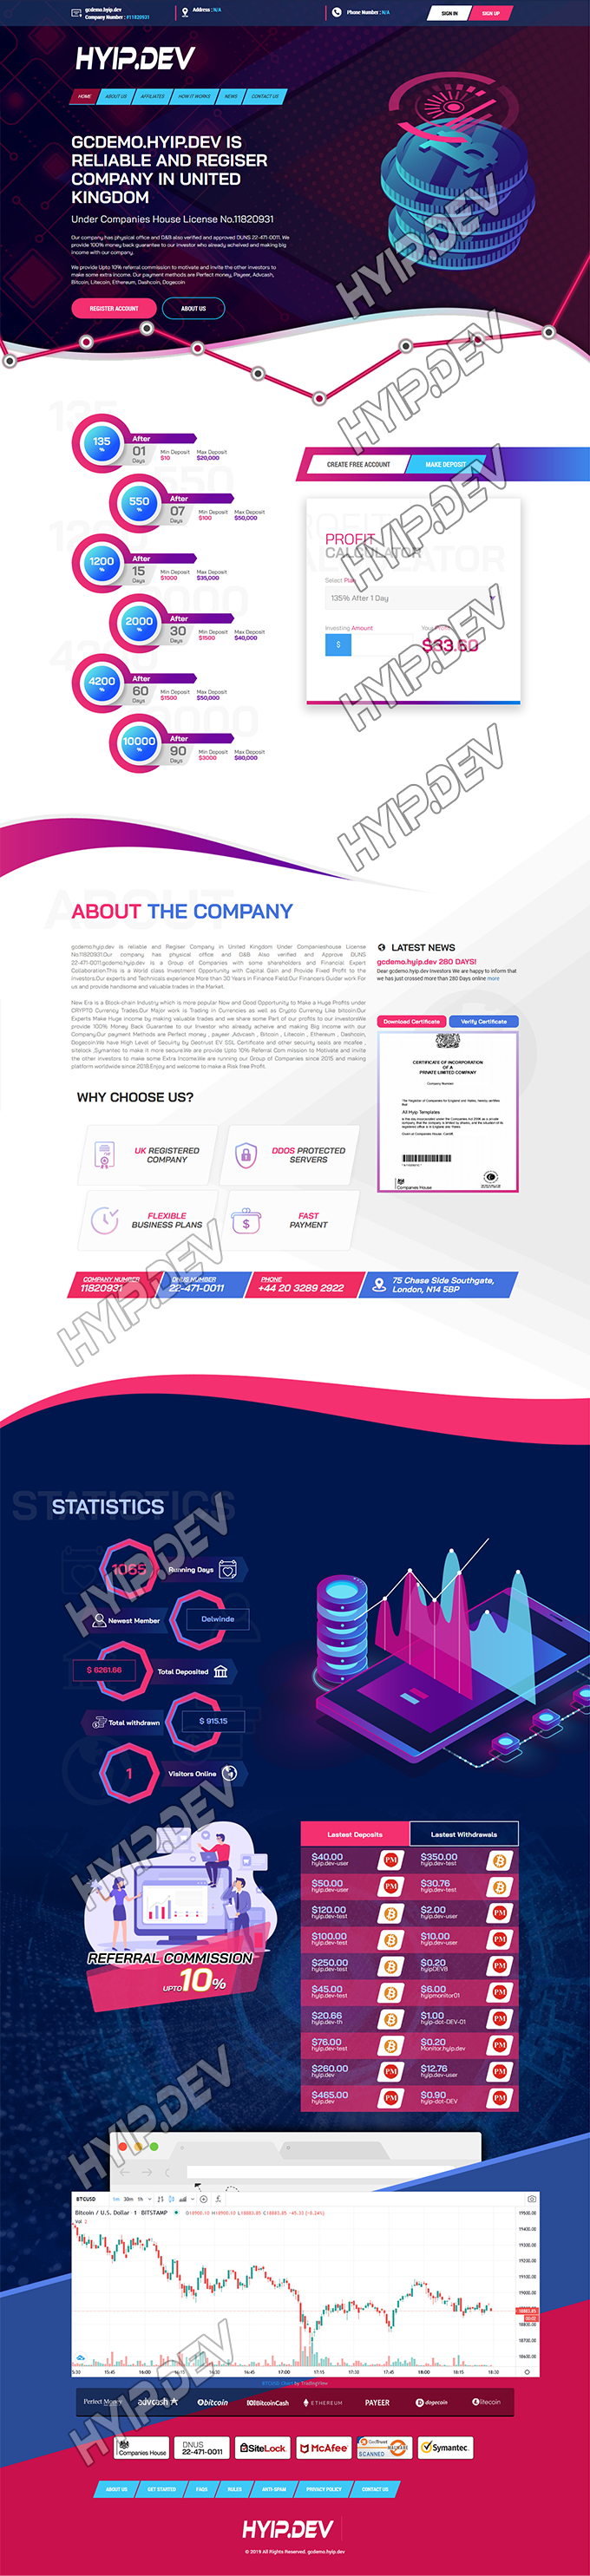 goldcoders hyip template no. 161, home page screenshot